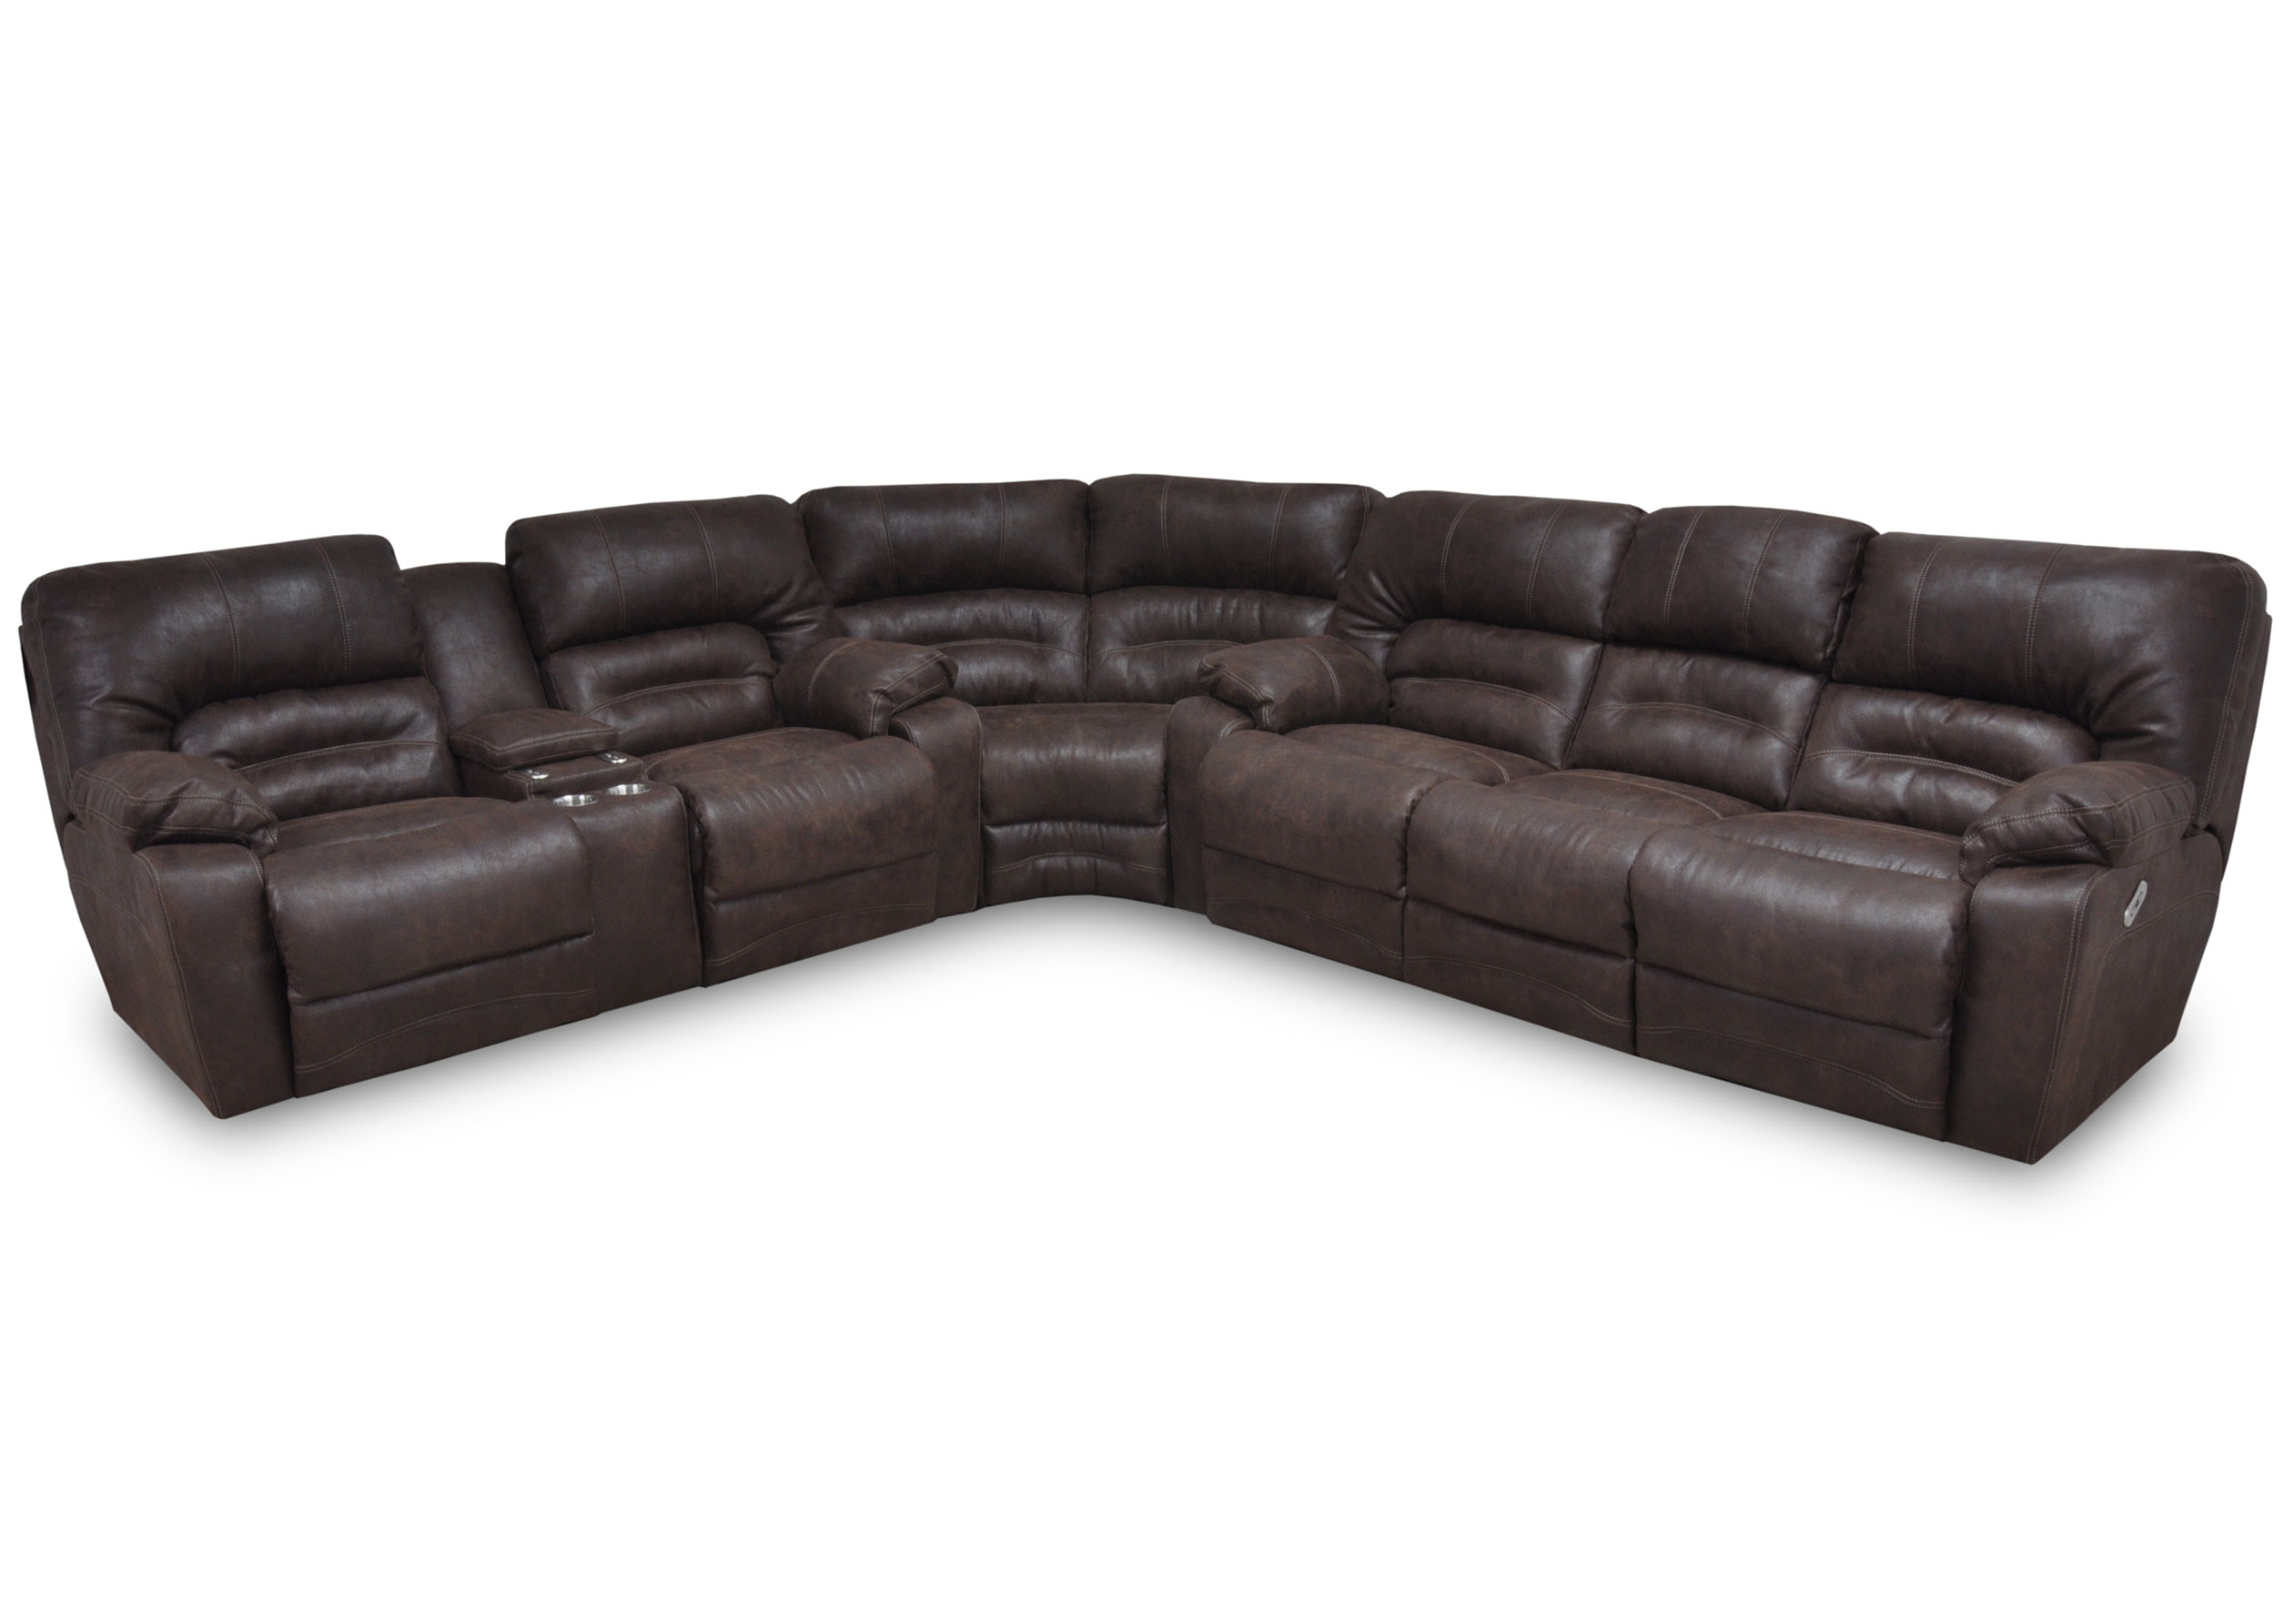 Sensational Legacy 500 Reclining Sectional In Chocolate Or Sofas And Unemploymentrelief Wooden Chair Designs For Living Room Unemploymentrelieforg